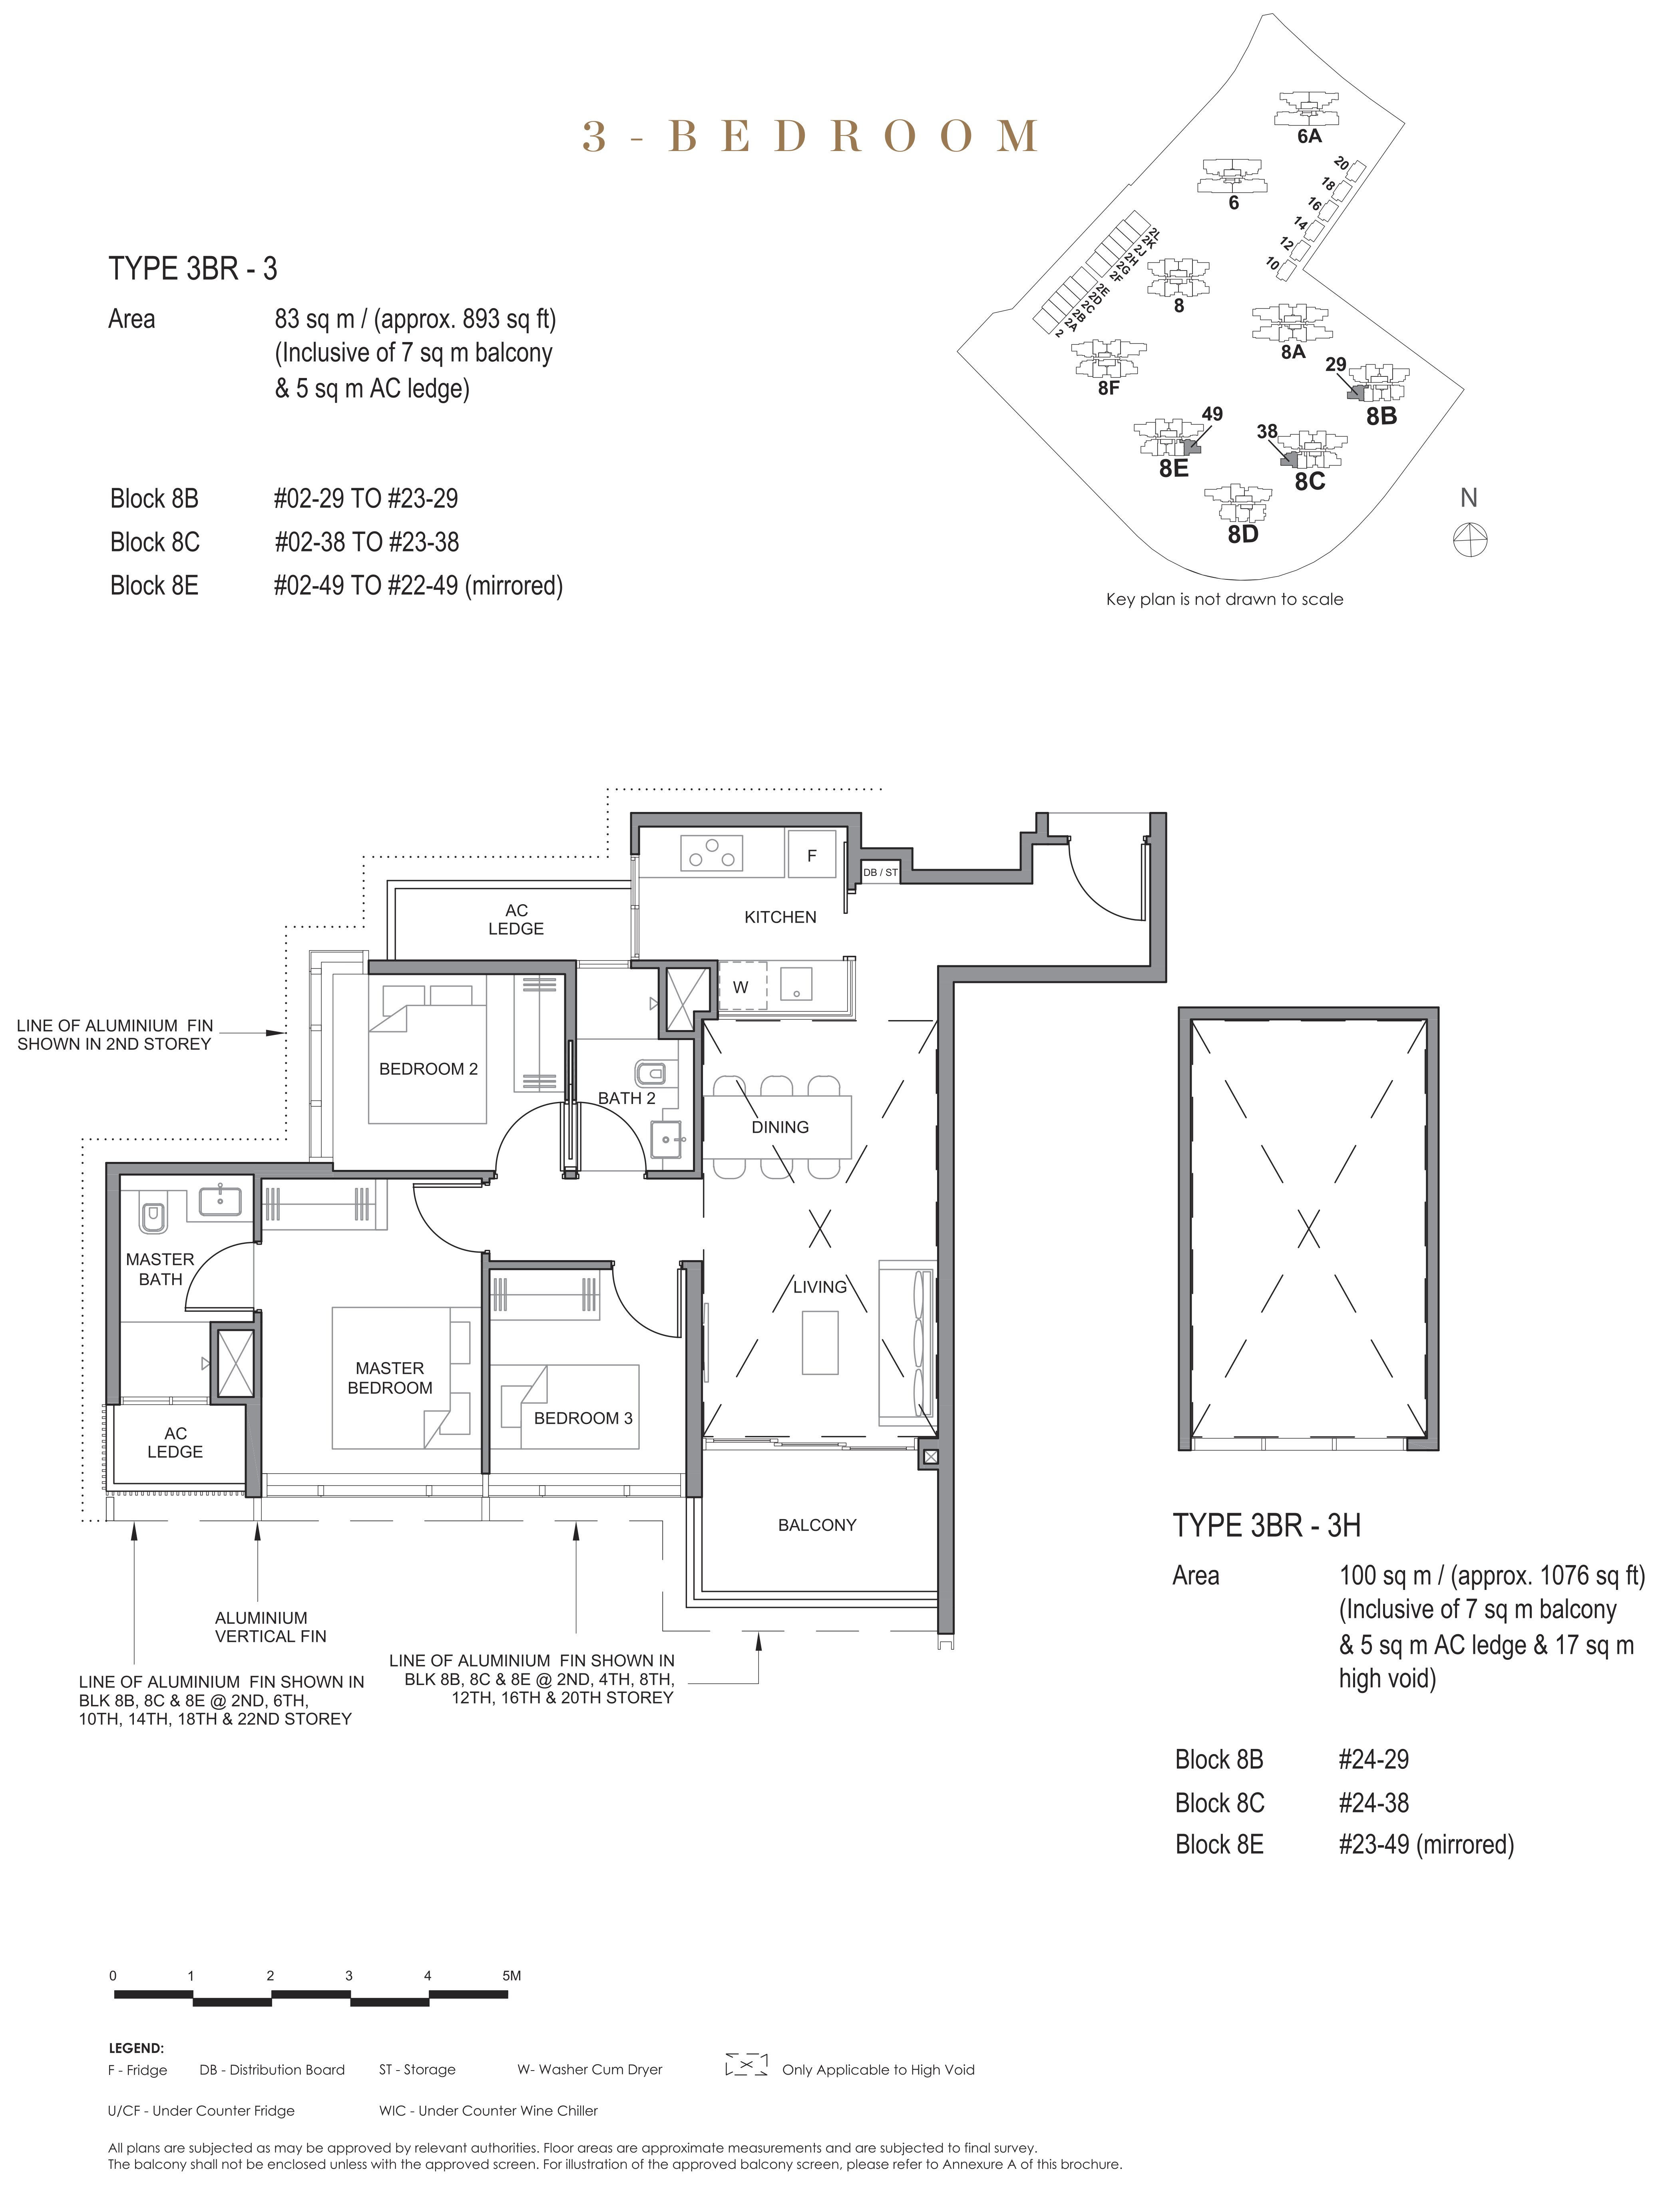 Parc Clematis 锦泰门第 contemporary 3 bedroom 3卧房 3 BR-3